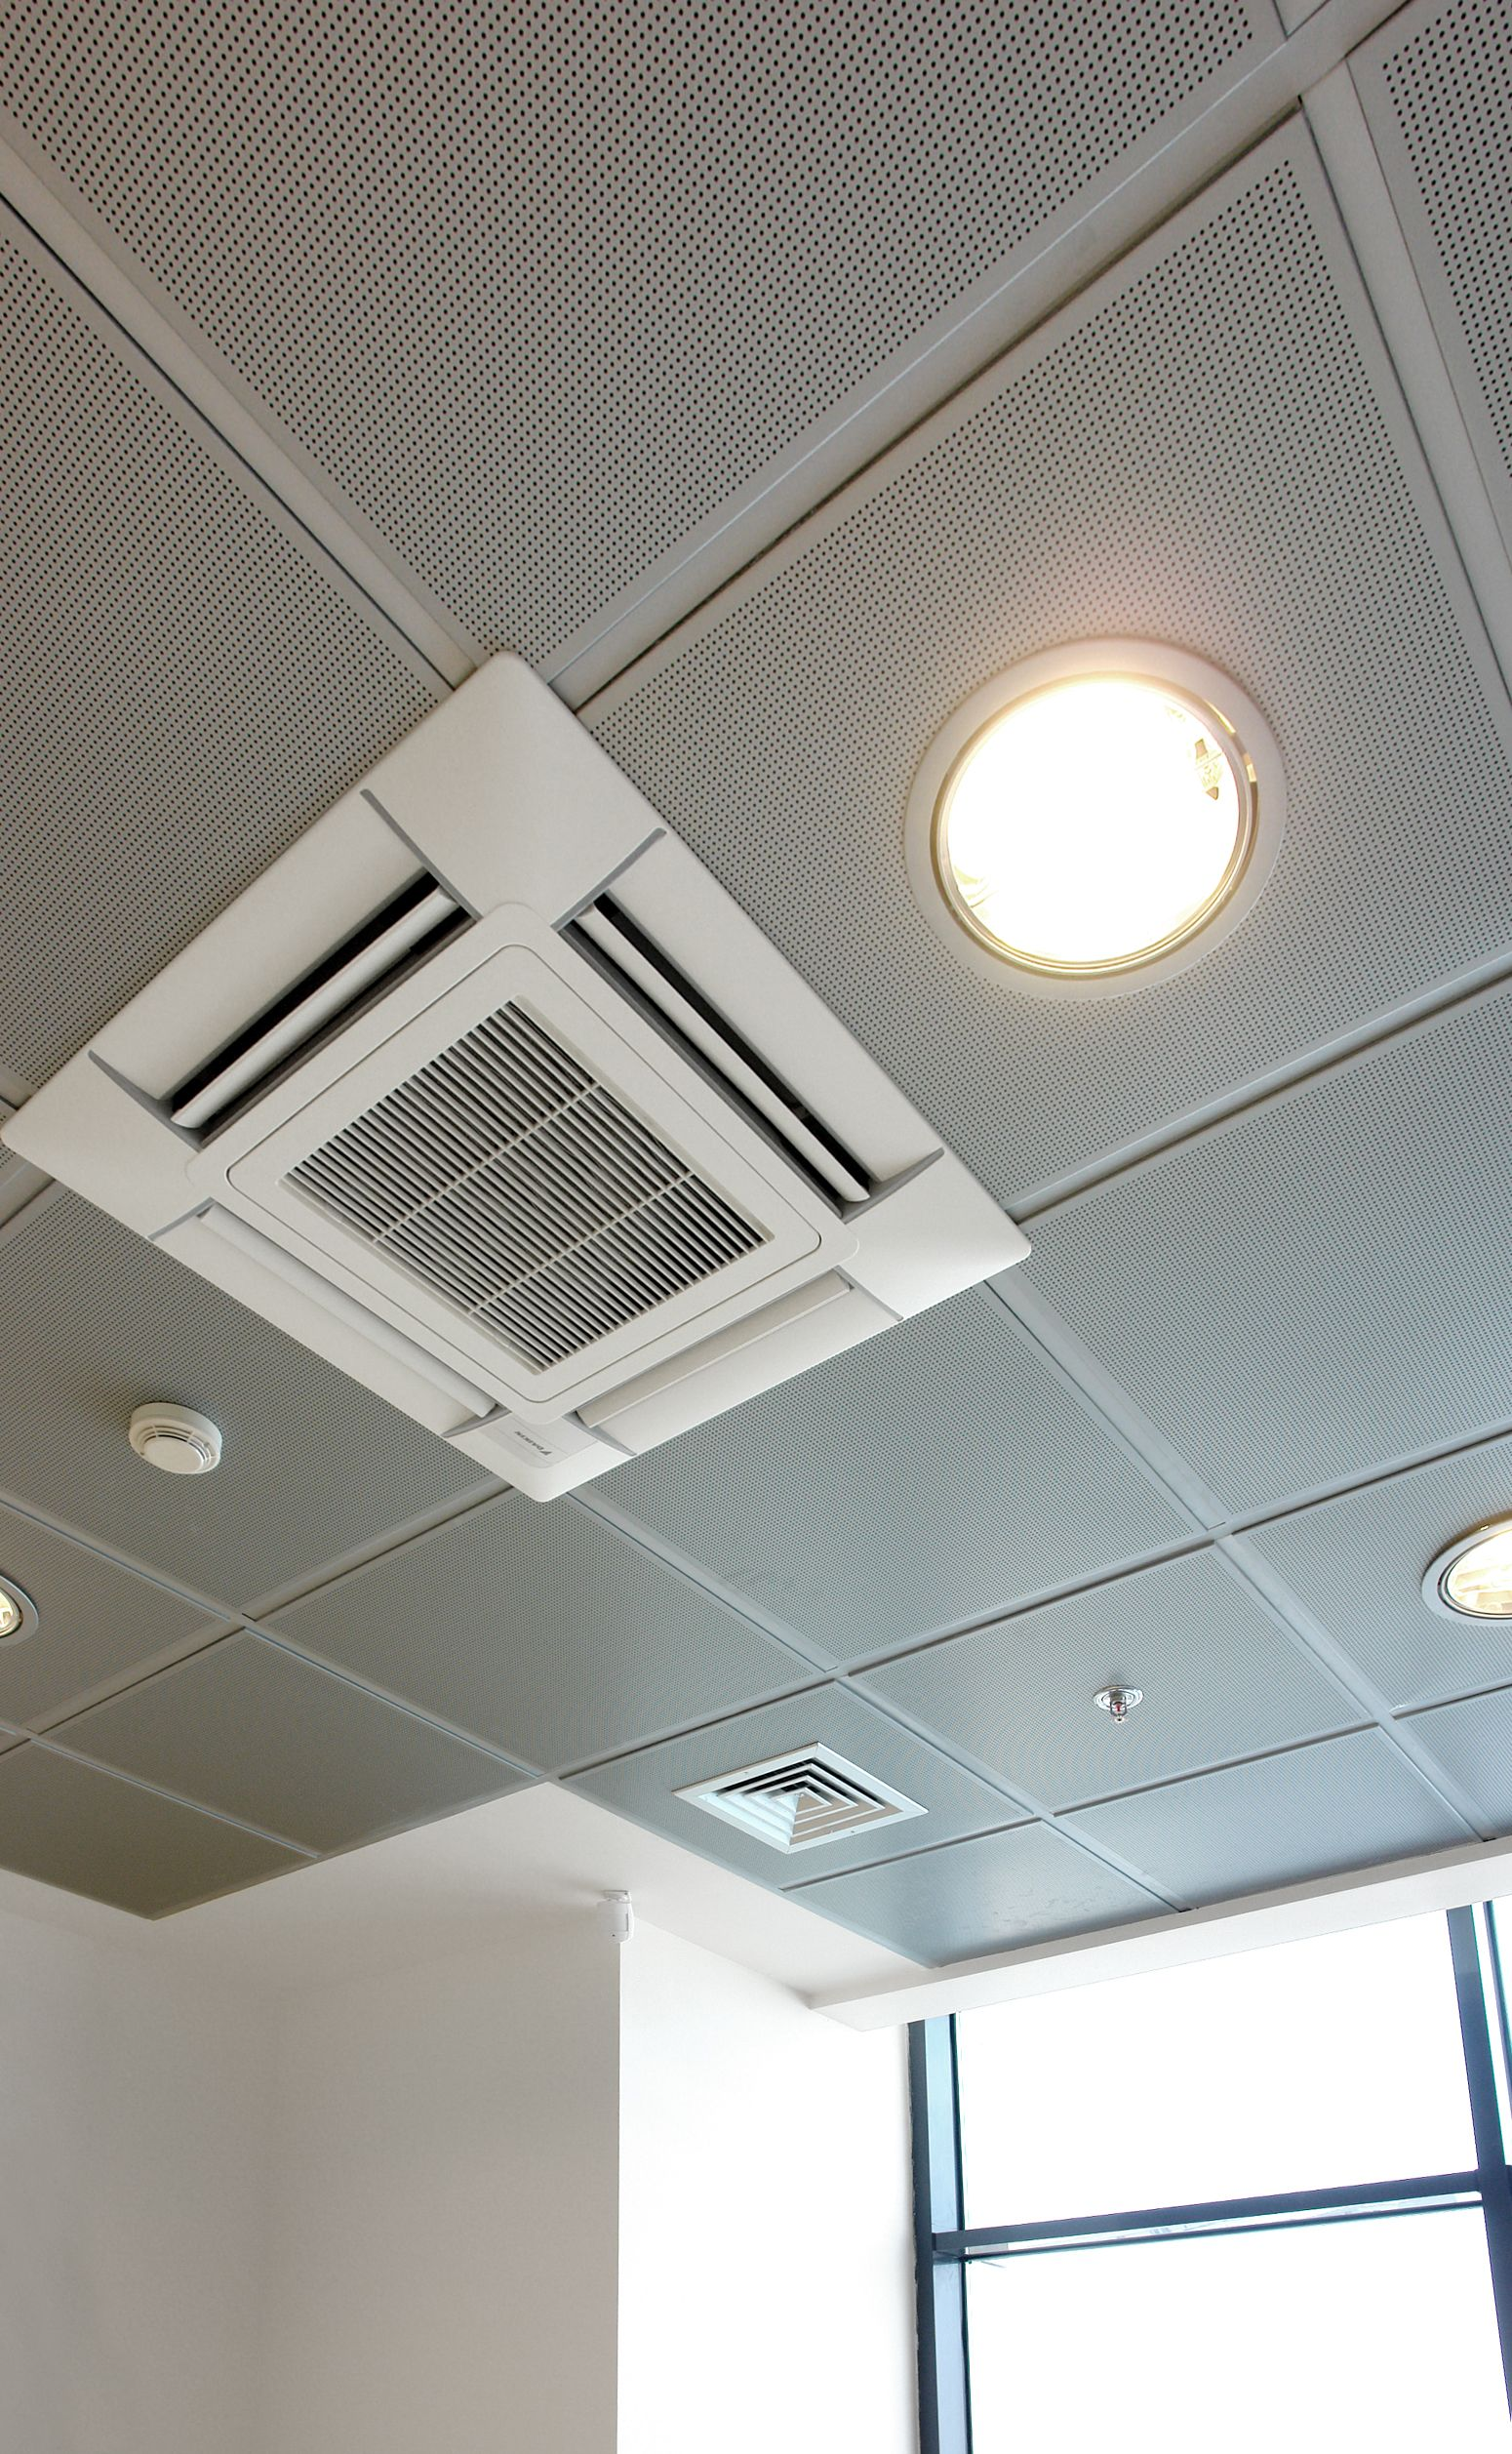 Metallic Perforated False Ceilings Air Conditioning Interior Lighting Interior